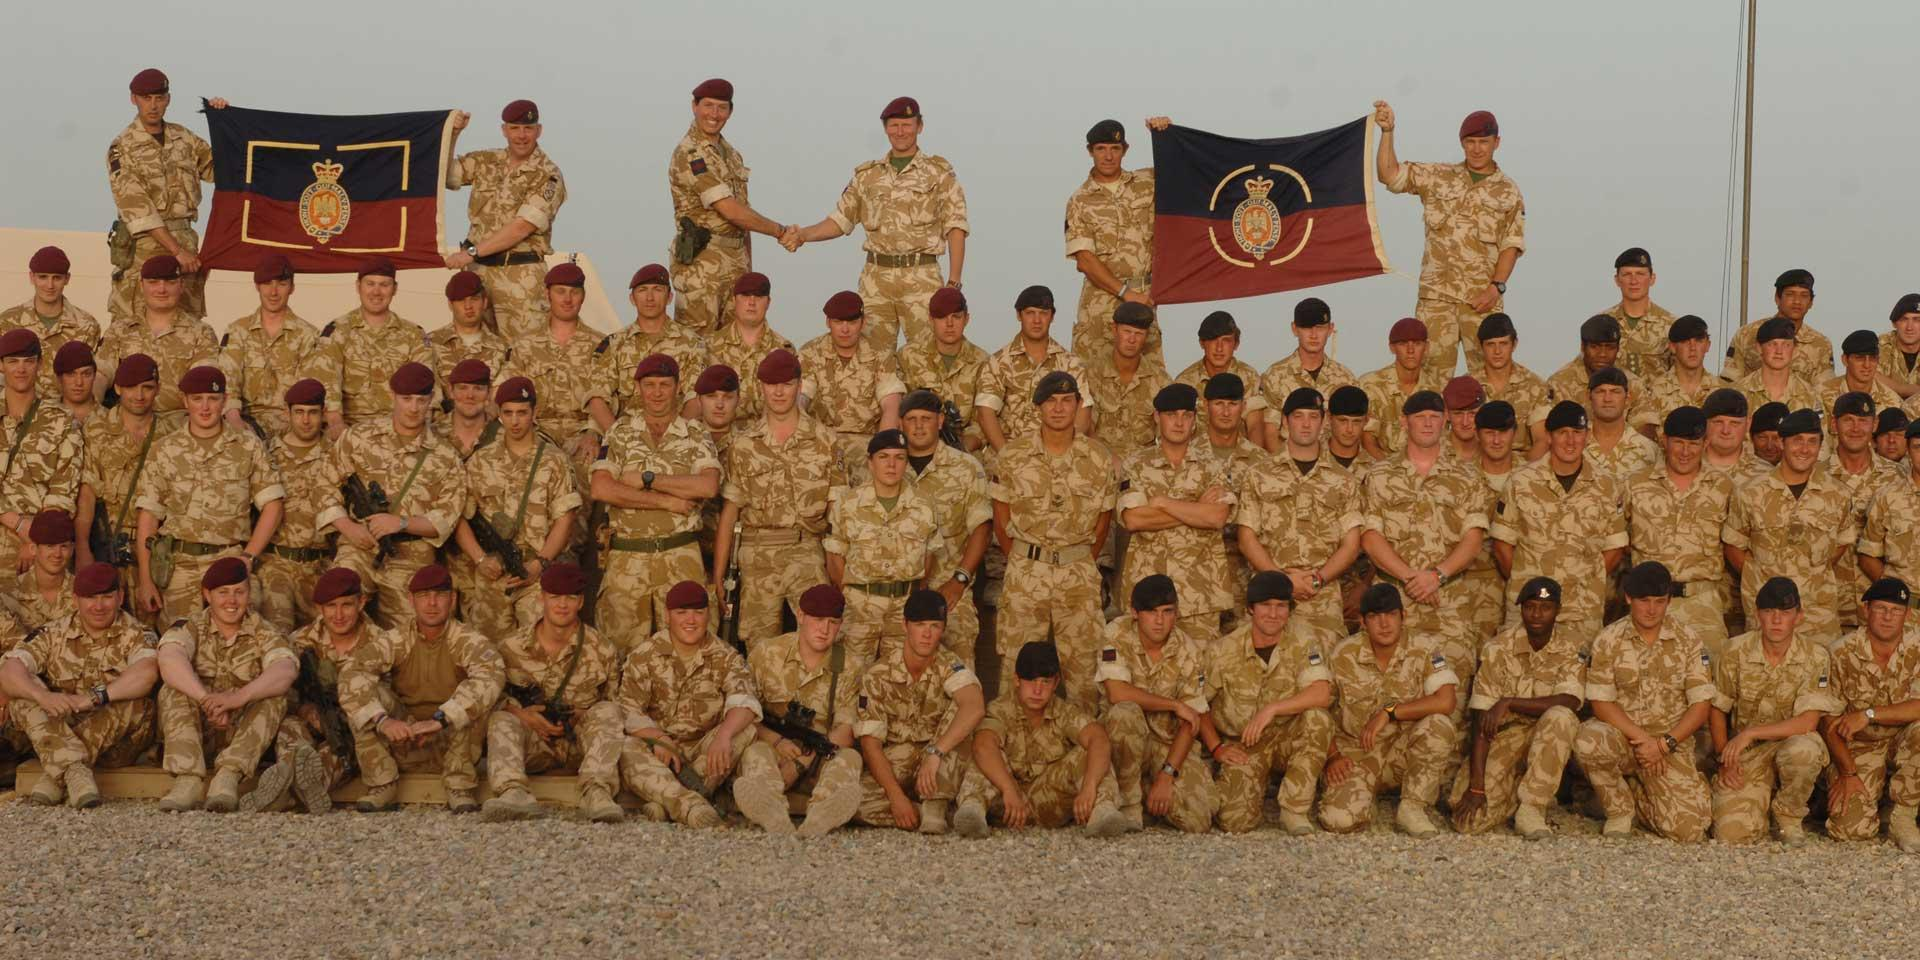 Members of The Blues and Royals (Royal Horse Guards and 1st Dragoons), Household Cavalry Regiment, Camp Bastion, Helmand Province, 2008